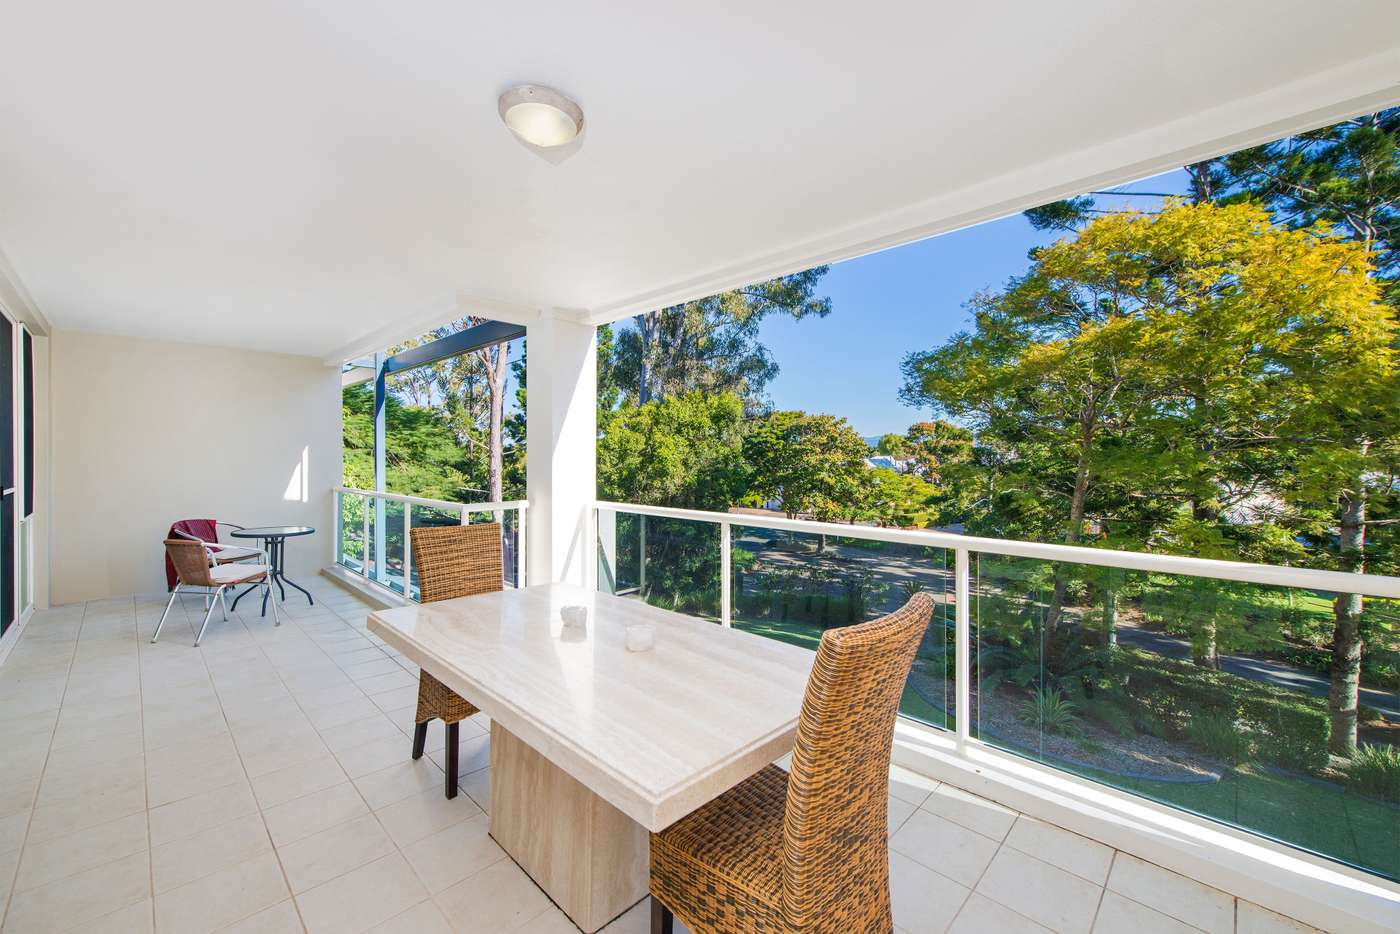 Main view of Homely unit listing, 4111 'Archer Hill' Royal Pines Resort, Benowa QLD 4217